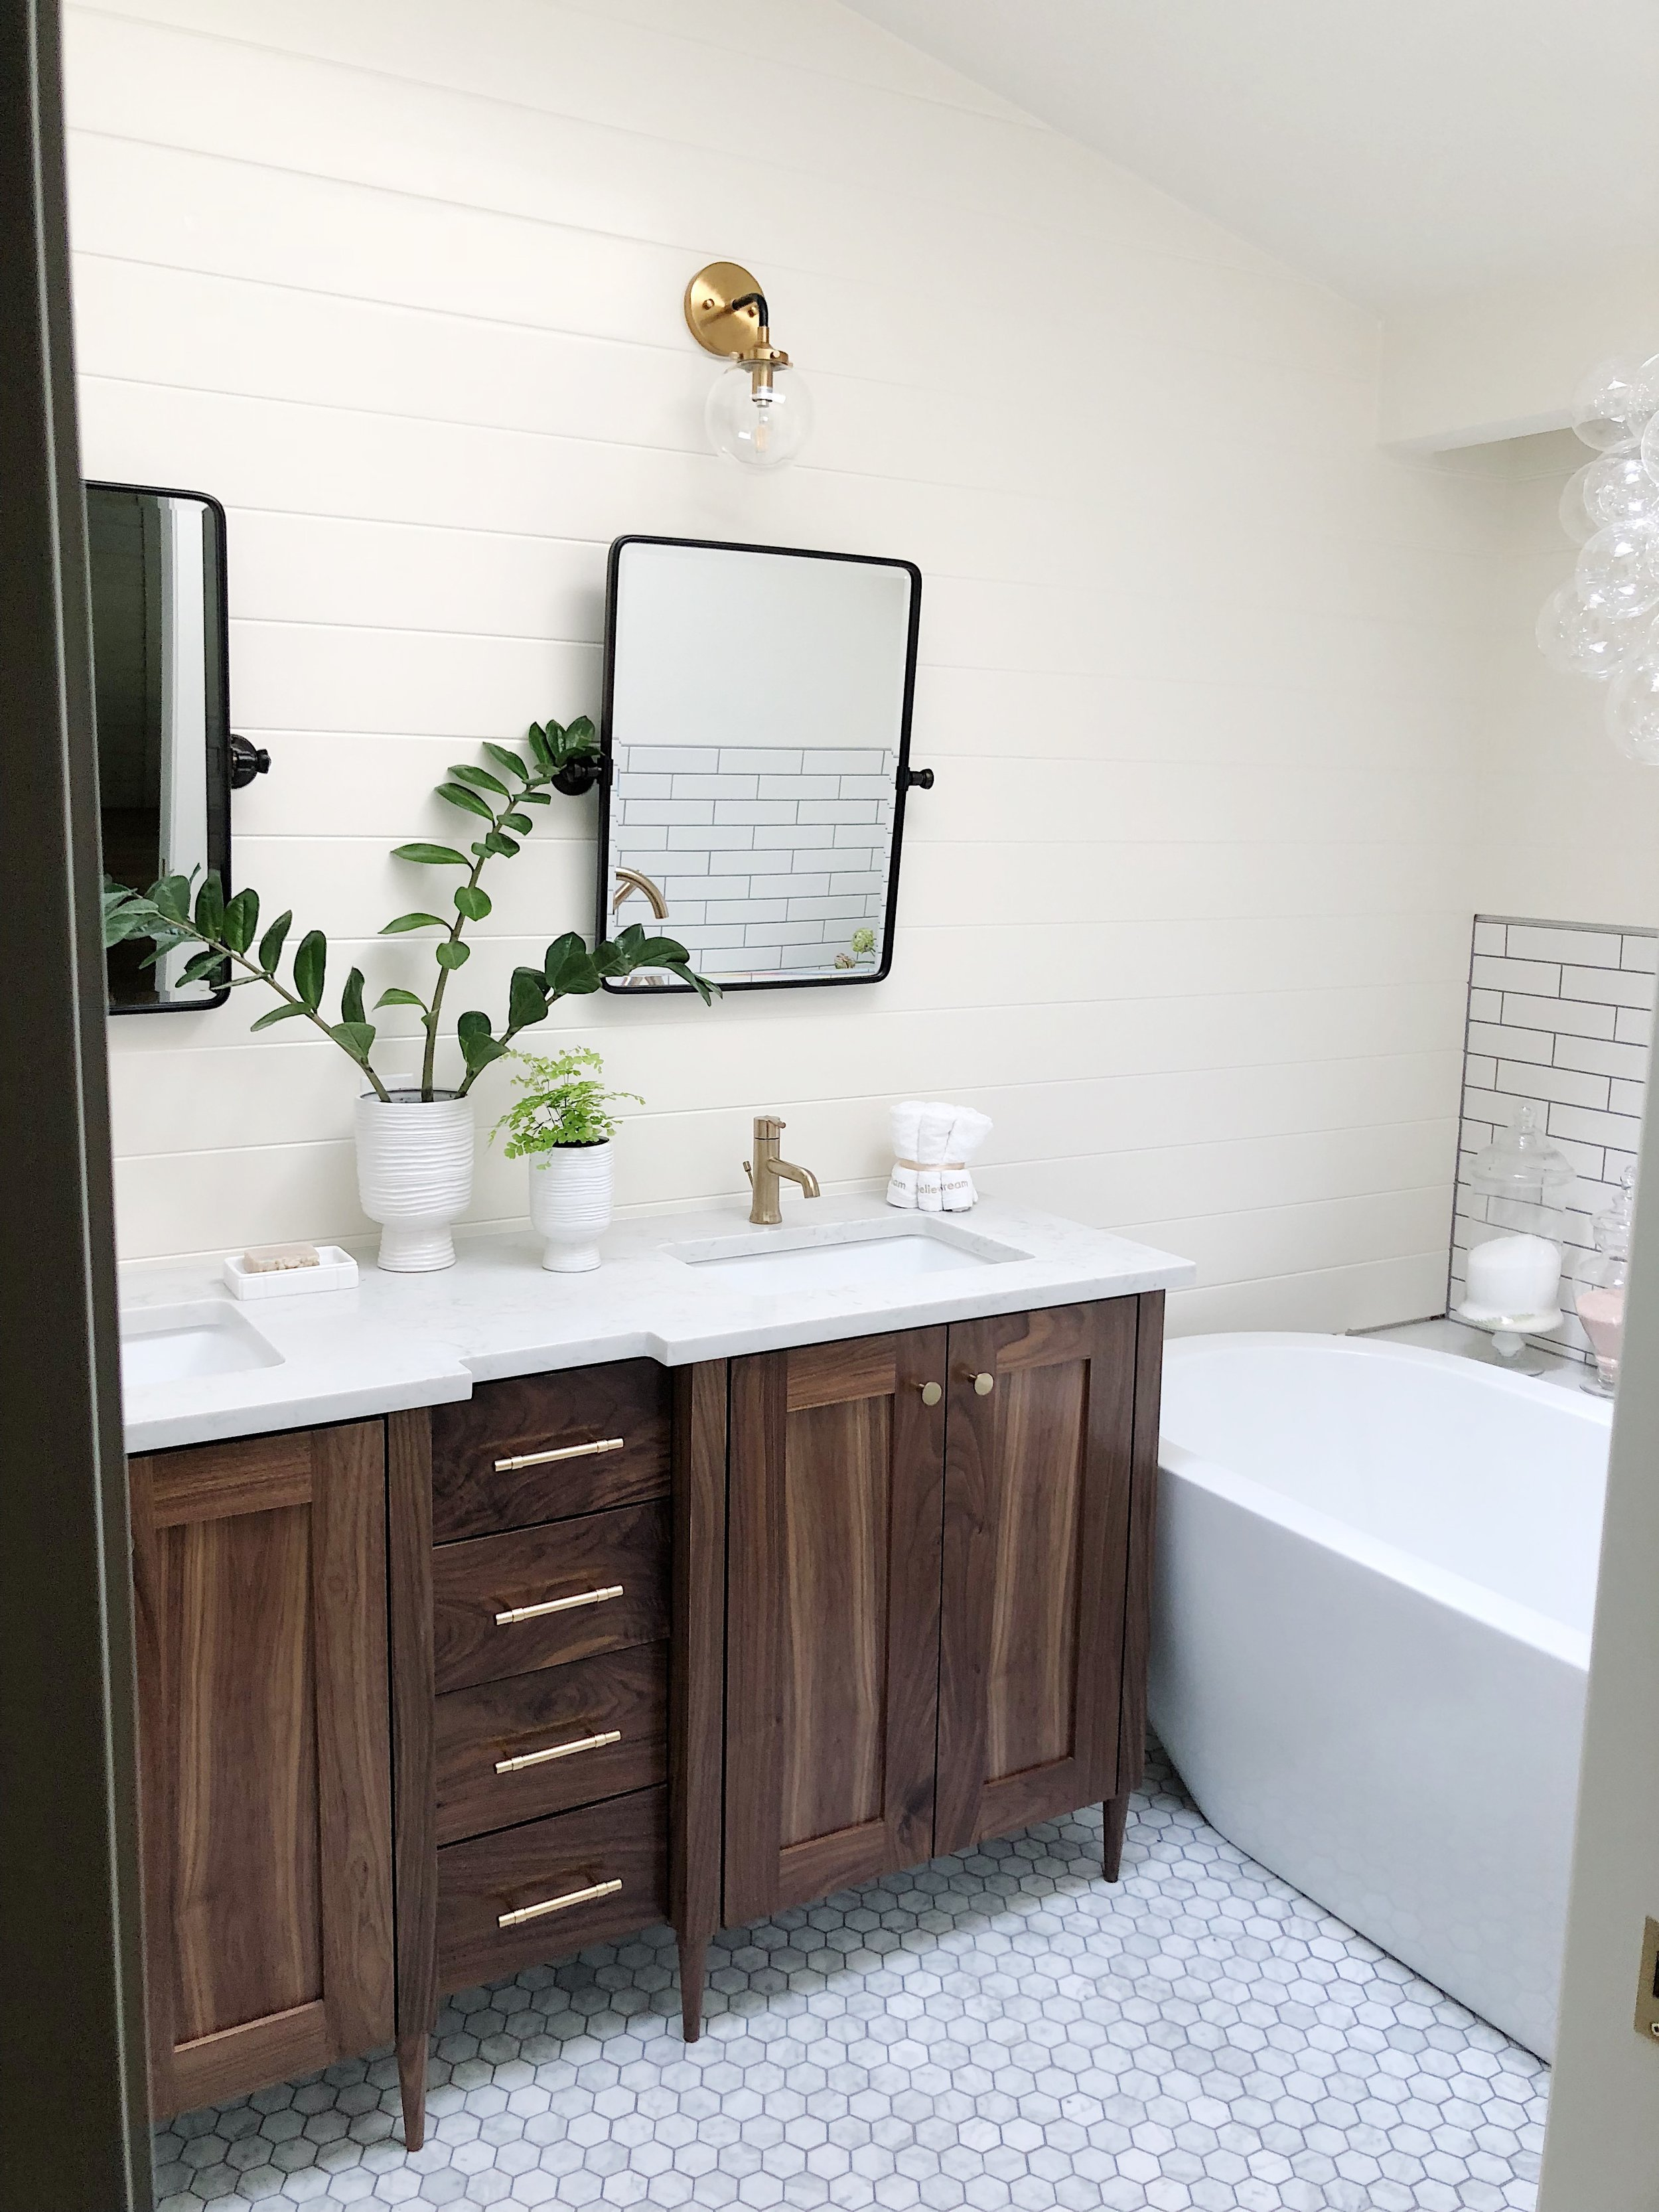 AFTER // Brand new Cabinets, sinks, faucets, lighting, tub, floor, shiplap